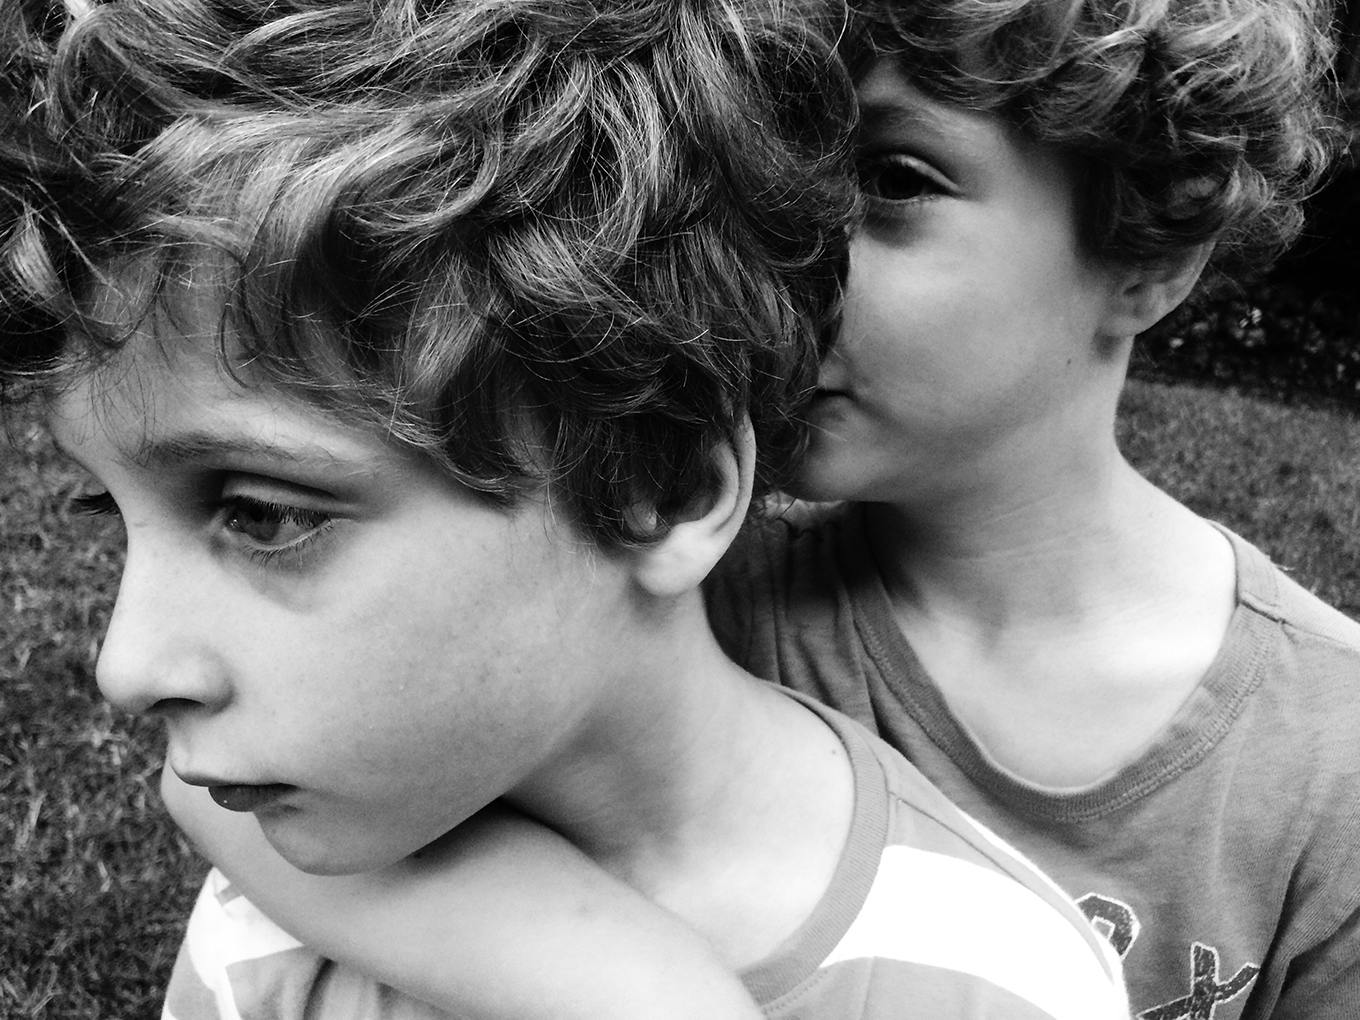 Twins, one with ASD